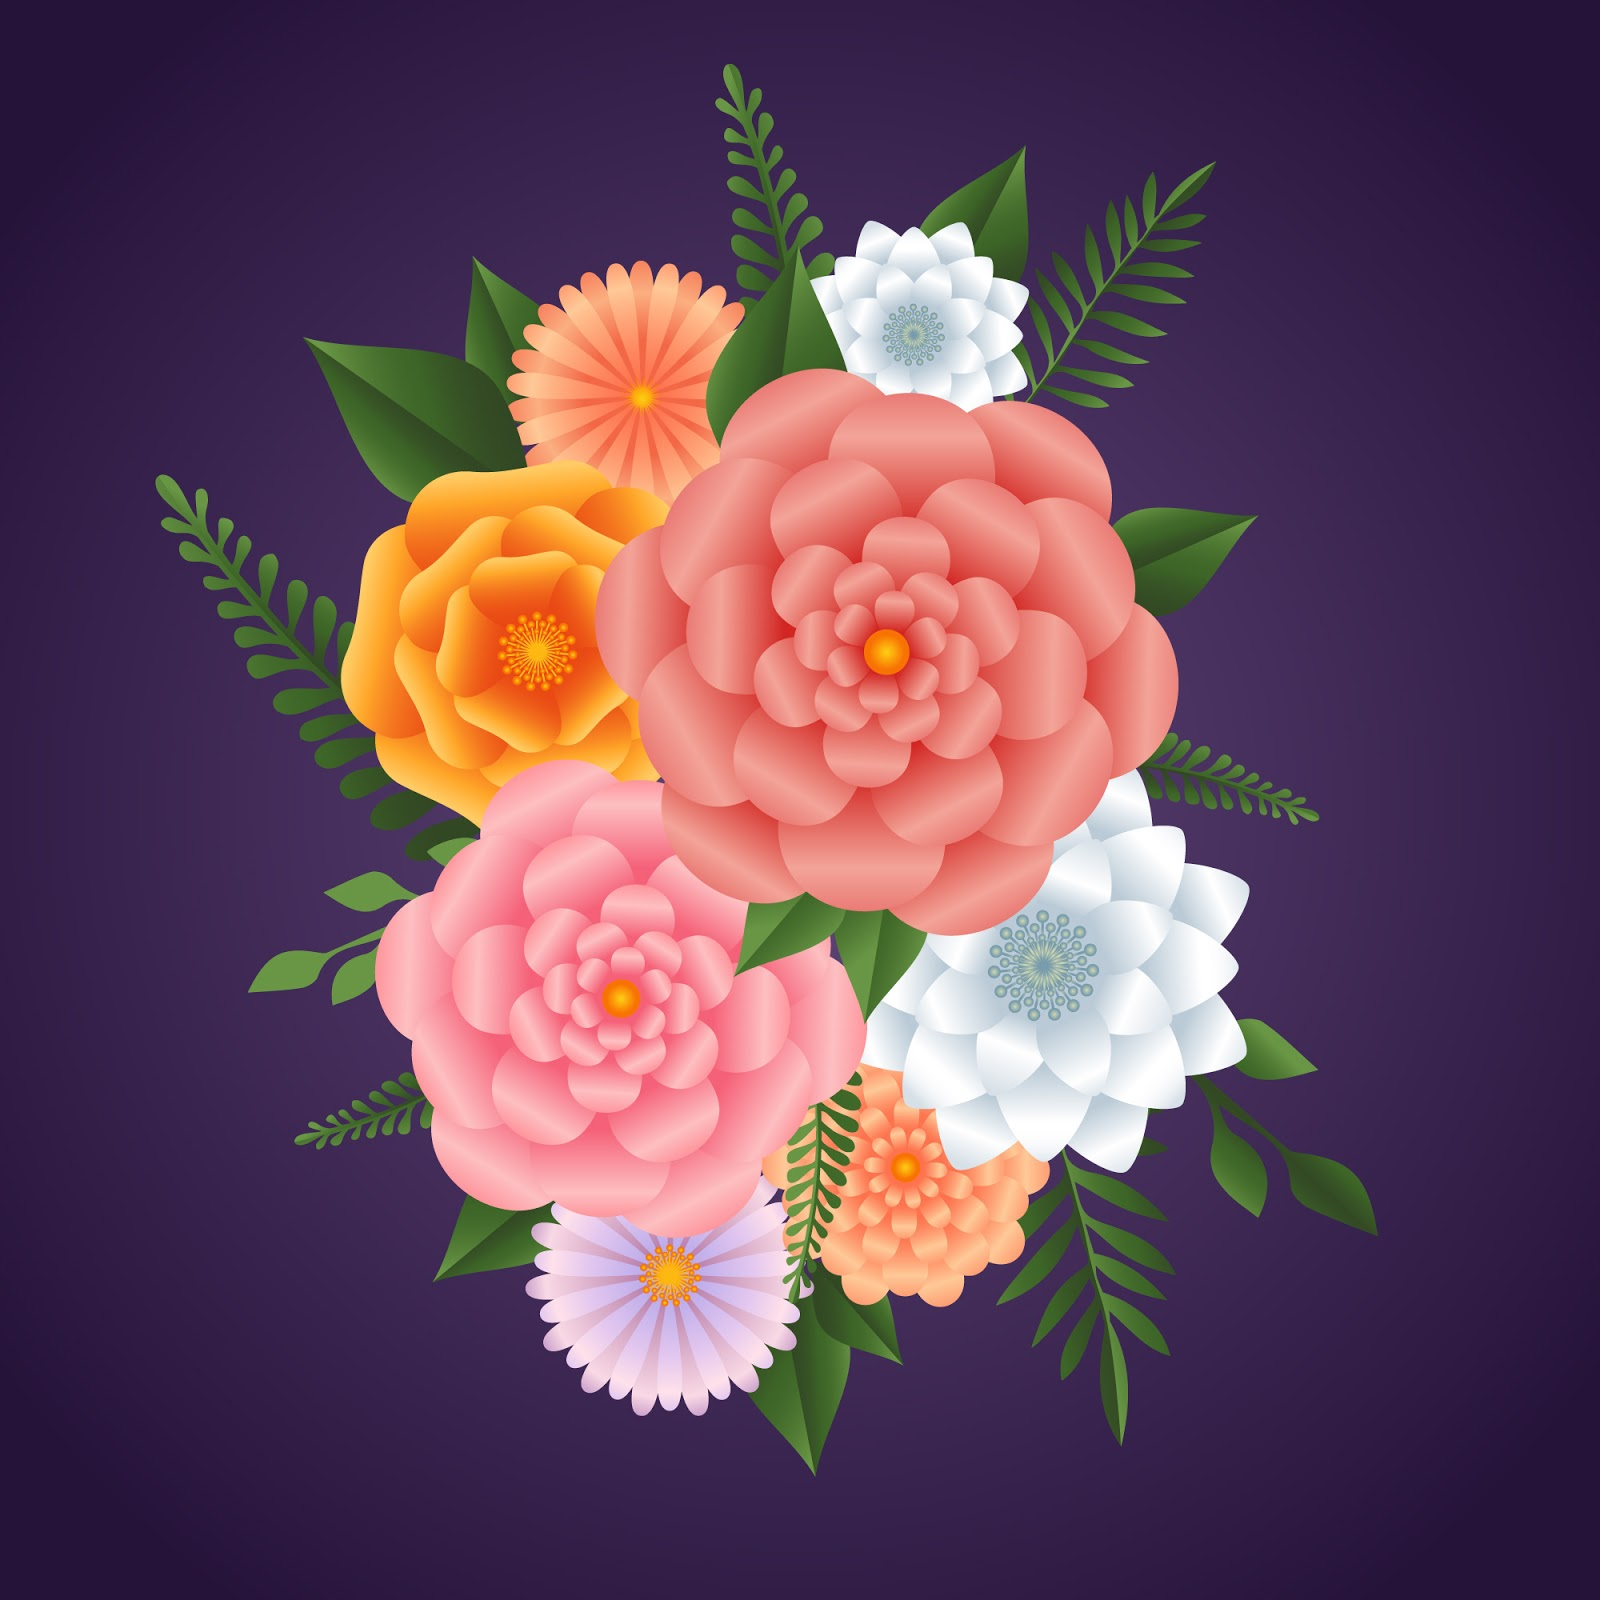 Colourful Gradient Paper Style Flowers Free Download Vector CDR, AI, EPS and PNG Formats